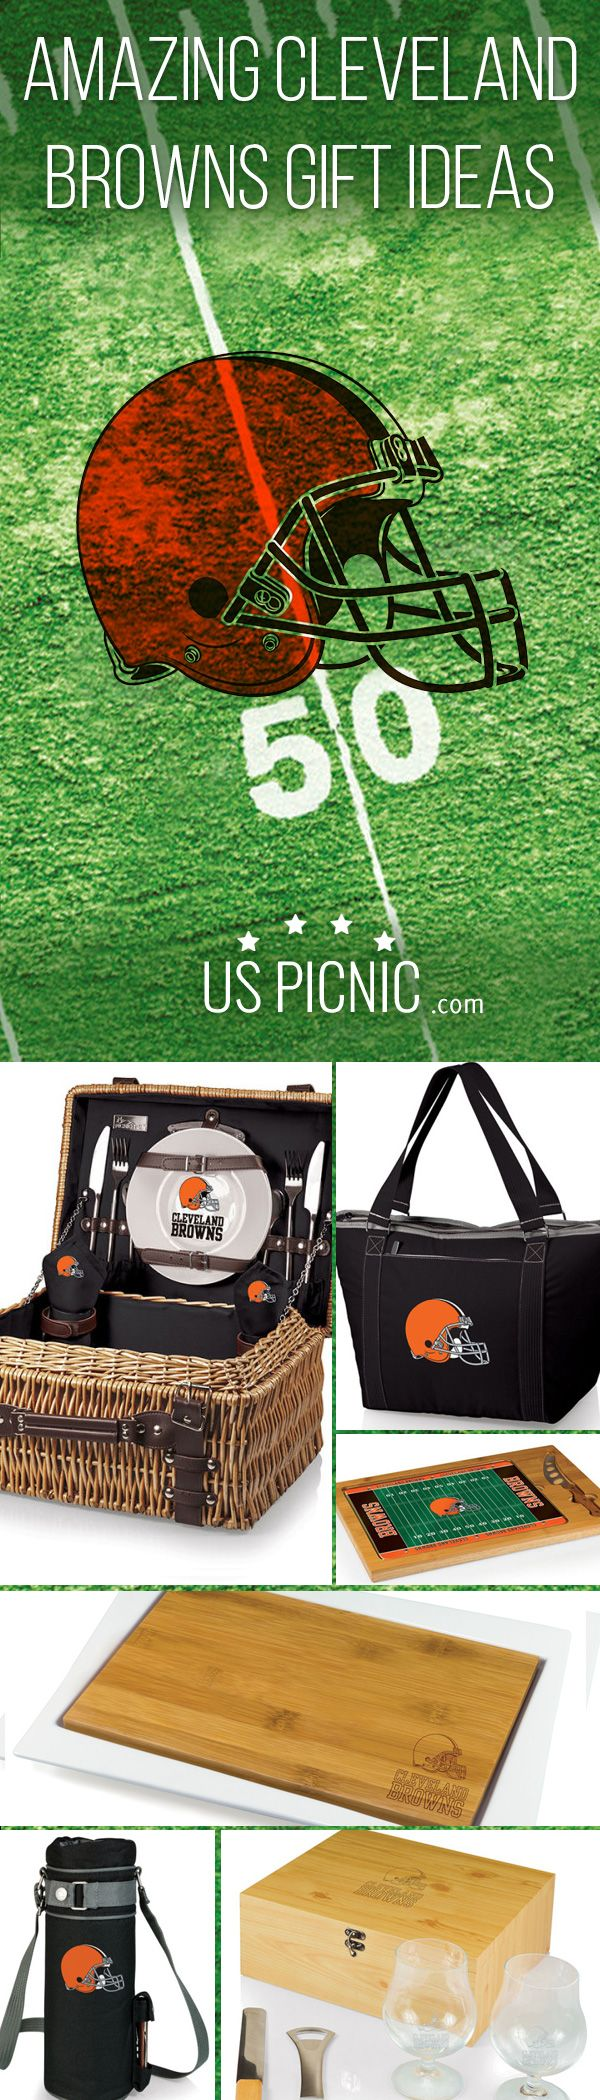 Get Ready for #NFL #Football Entertaining. Get Amazing Cleveland Browns Gift Ideas from USPicnic.com https://www.uspicnic.com/product-category/licensed-products/?utm_source=pinterest&utm_medium=pin&utm_campaign=nflpinterest #clevelandbrowns #wine #picnics #cuttingboards #picnicbaskets